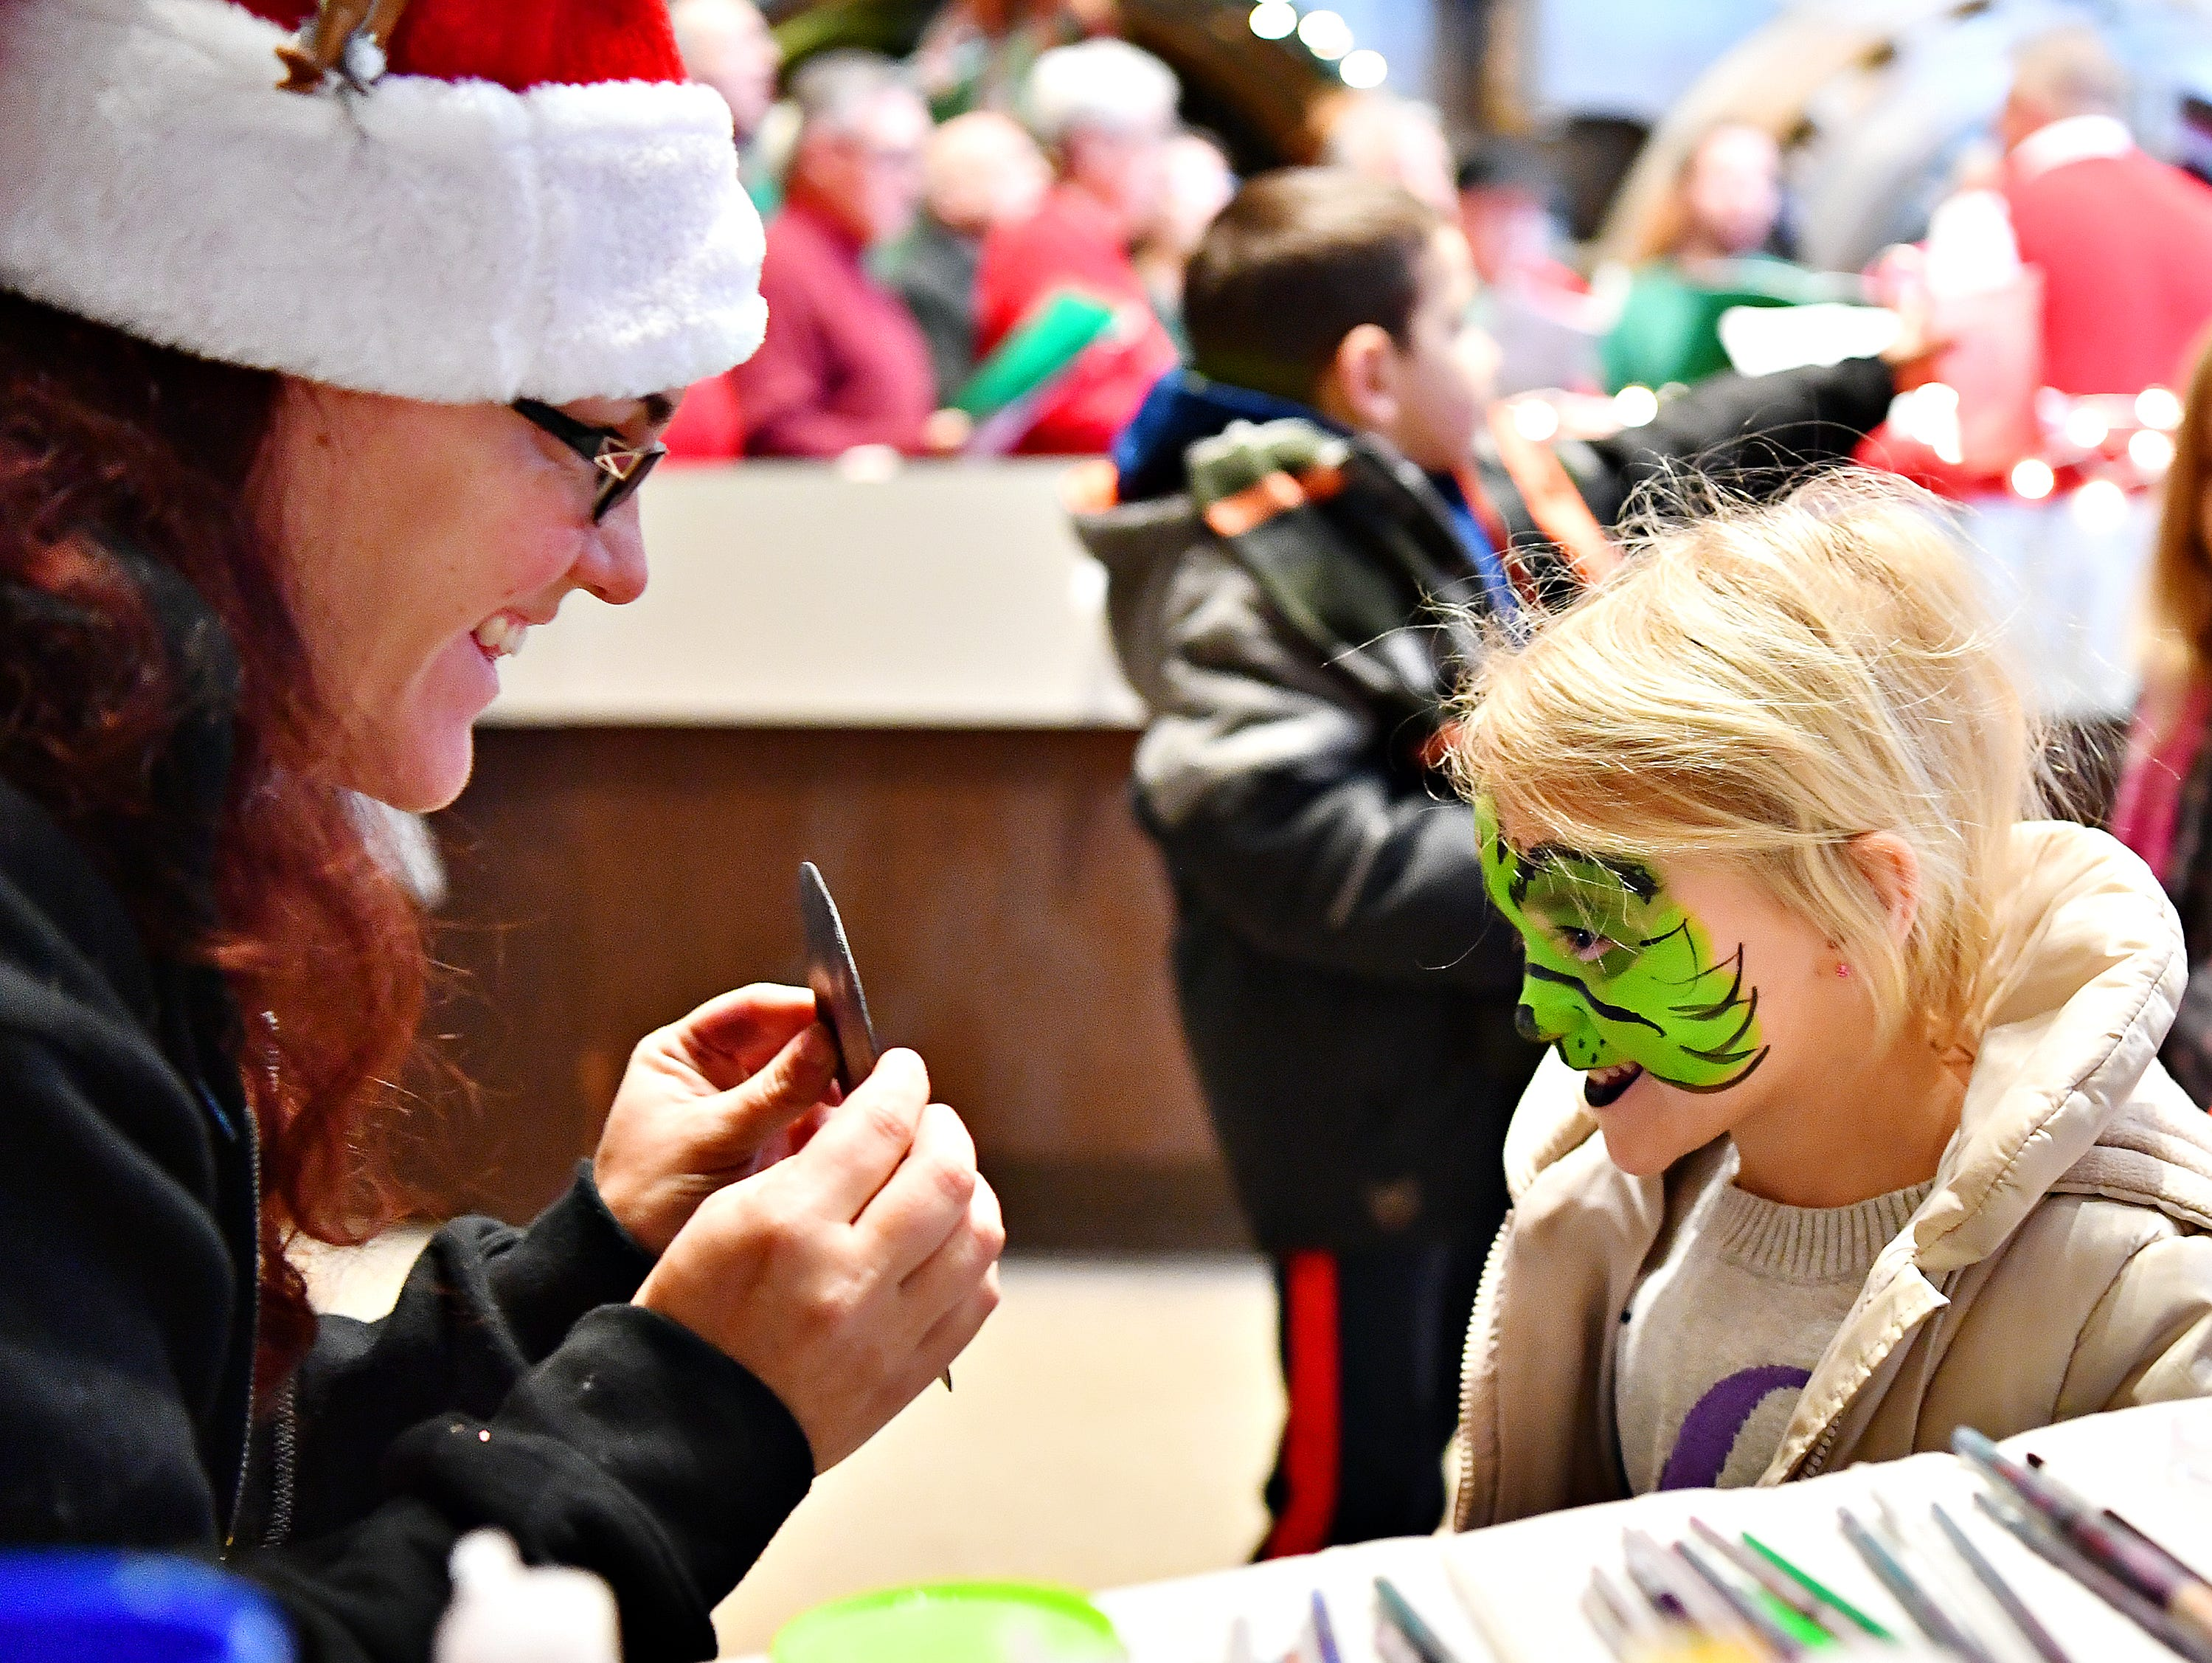 Katie Smock, left, of Atomic Bounce, shows Avery Jackson, 3, right, of Springettsbury Township, her newly painted Grinch face in a mirror at the Photo Opp Stop during Light Up York in York City, Saturday, Dec. 1, 2018. Dawn J. Sagert photo